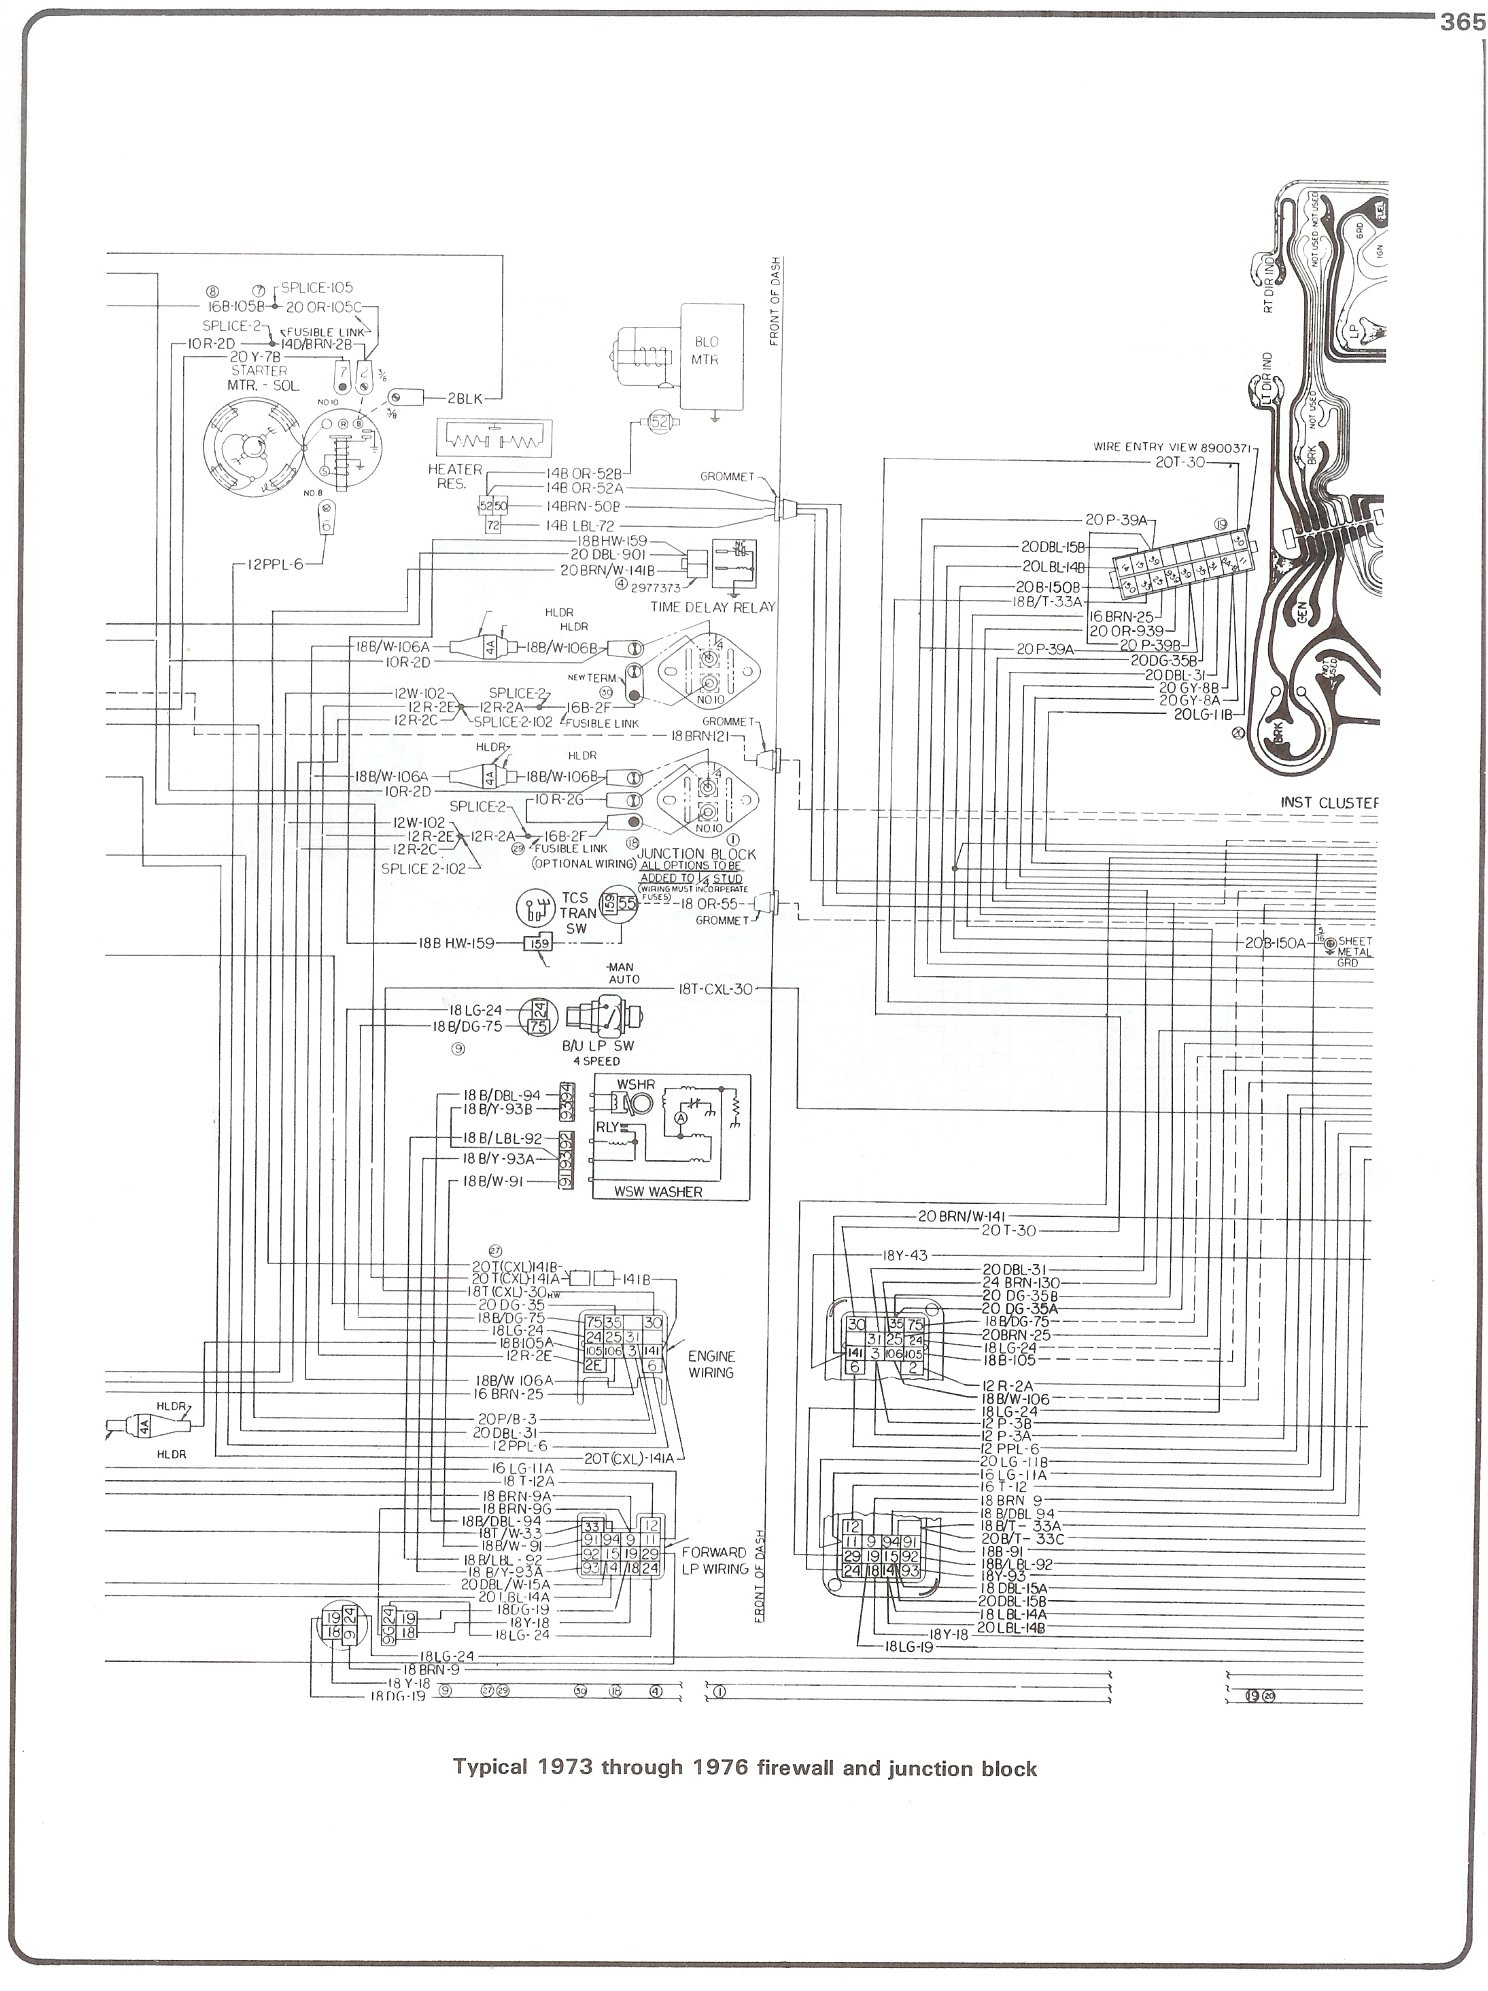 73 76_firewall_junct complete 73 87 wiring diagrams  at n-0.co